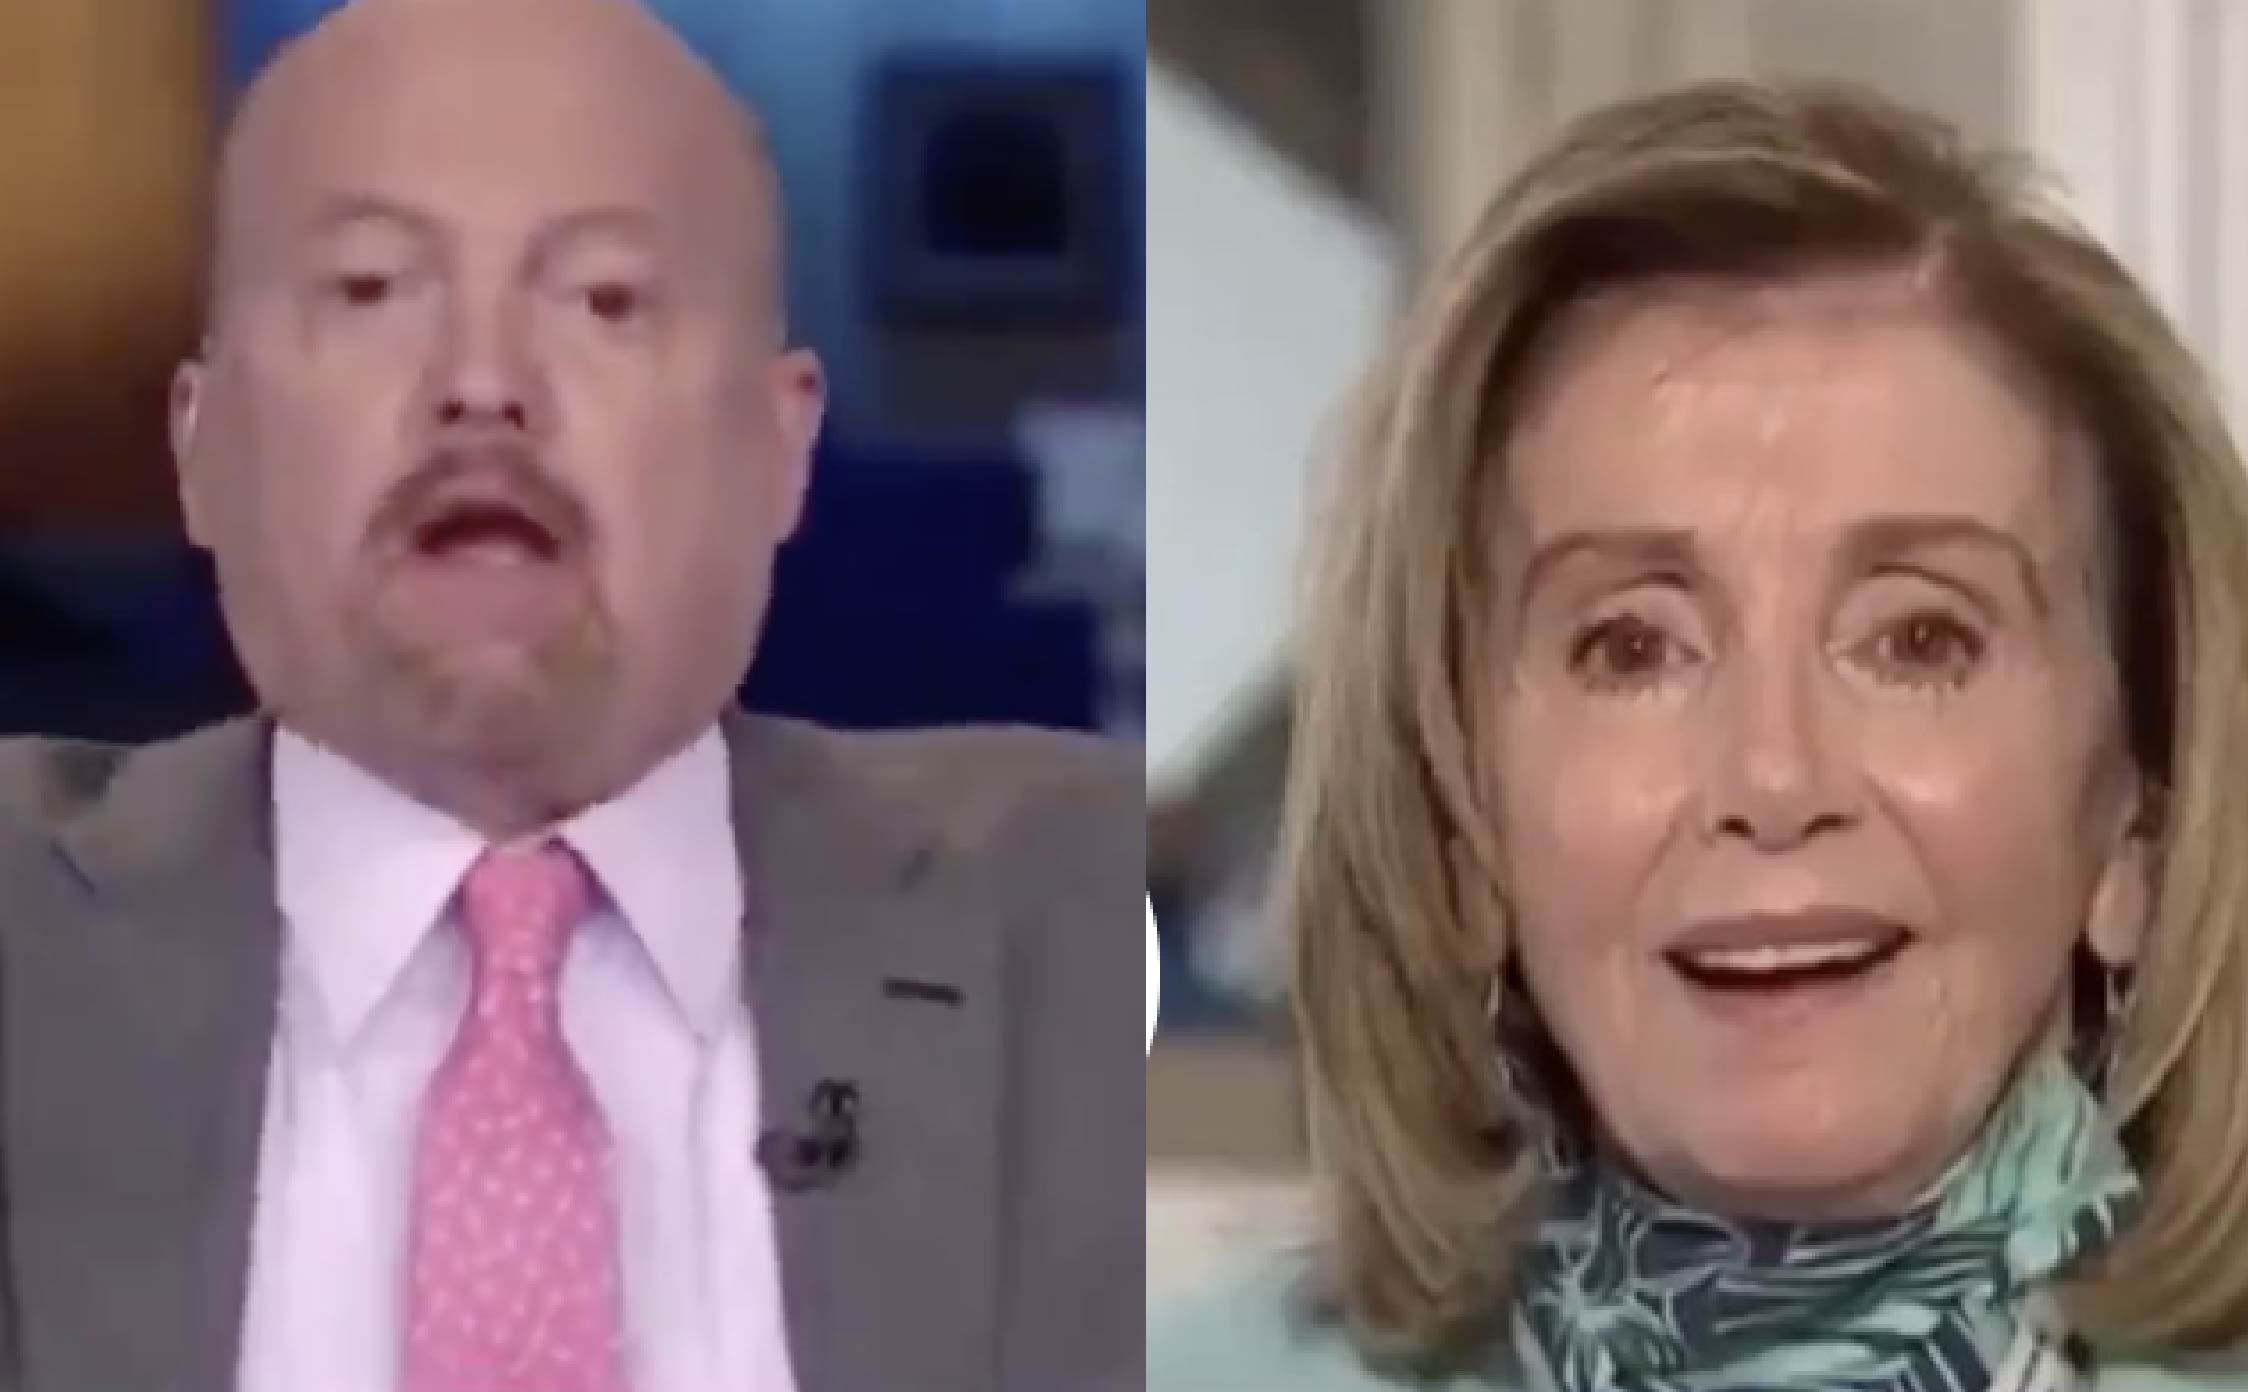 """[VIDEO] Check Out The Look on Pelosi's Face When Jim Cramer Calls Her """"Crazy Nancy"""""""